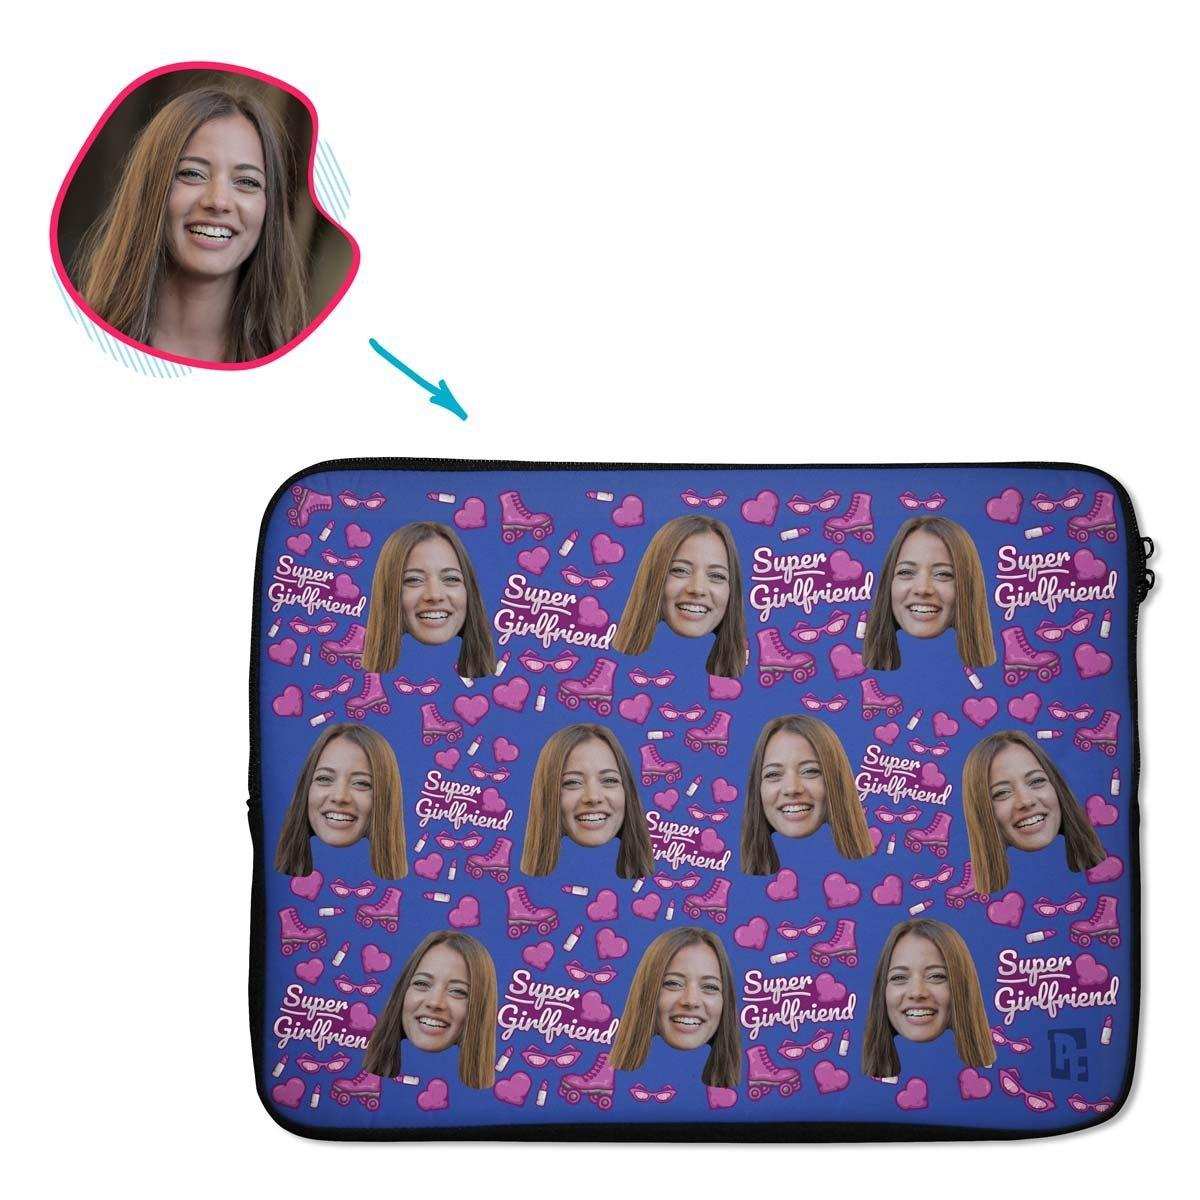 Darkblue Girlfriend personalized socks with photo of face printed on them